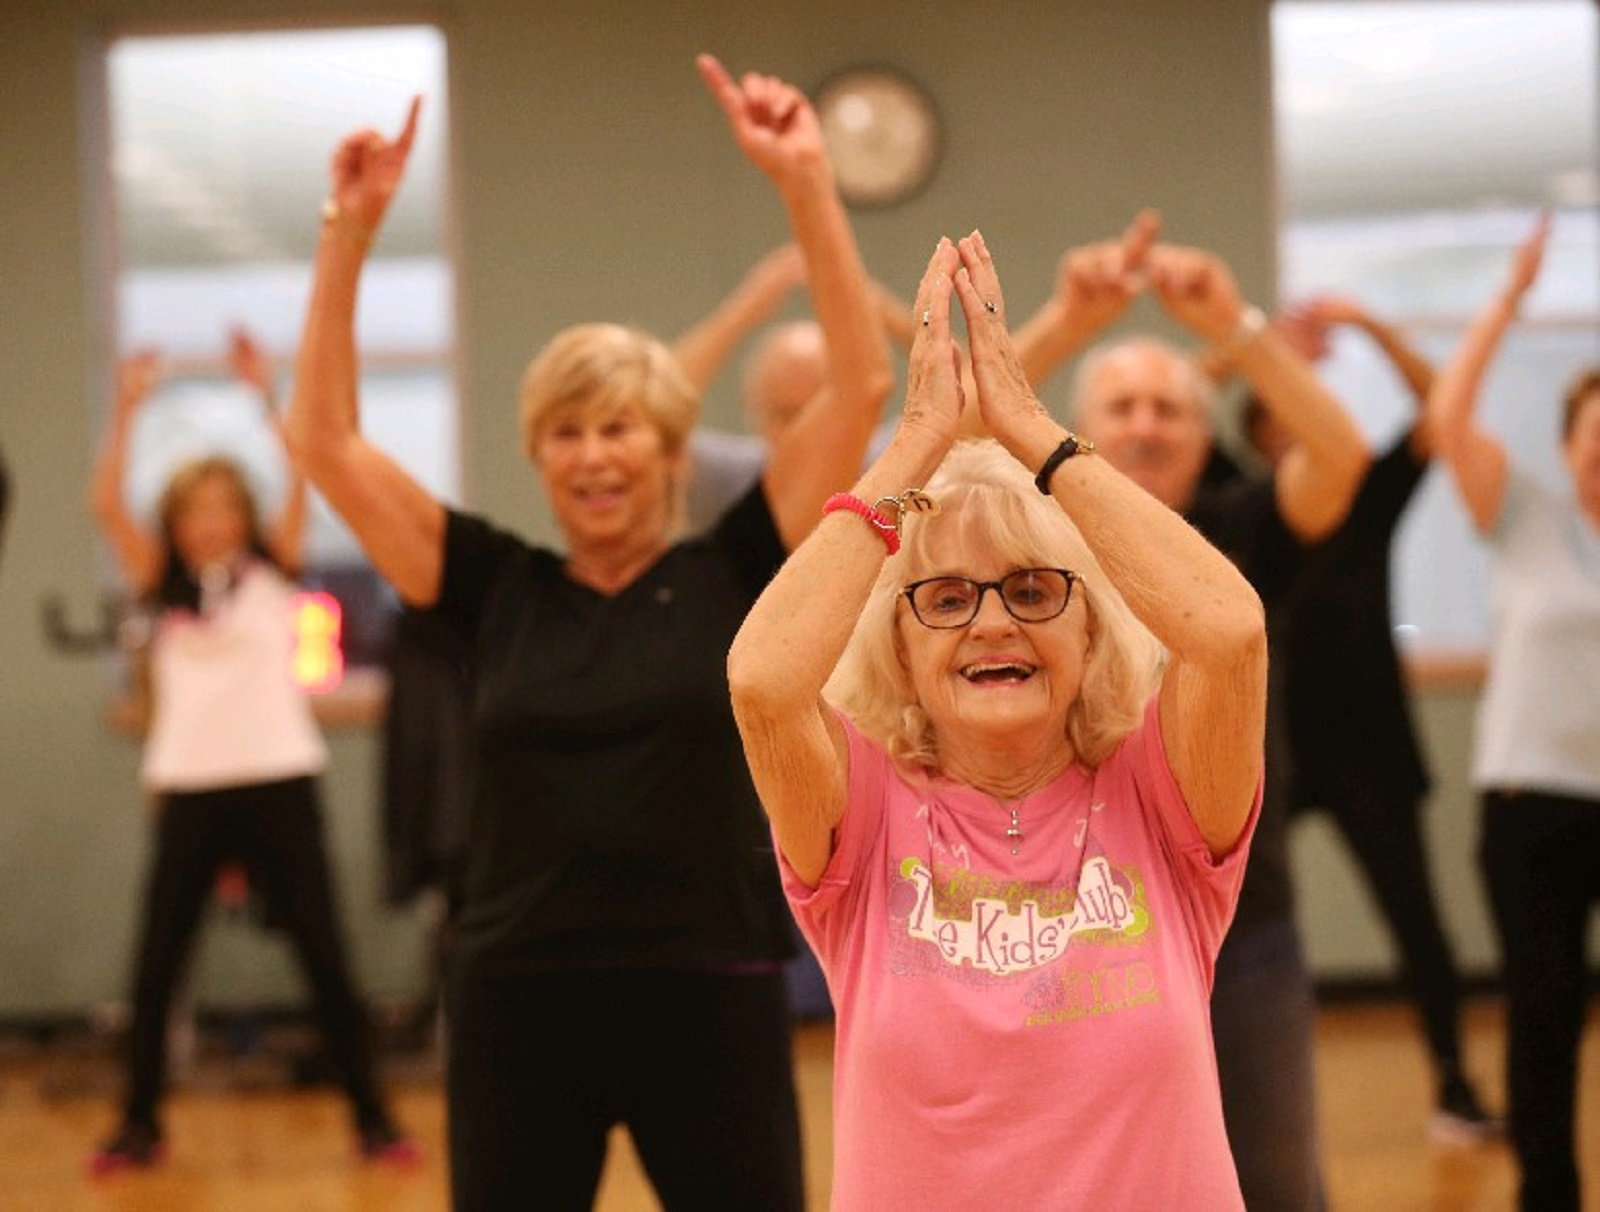 Those looking to keep fit have chances at exercise classes across the region, including Zumba Gold at the Independent Health Family Branch YMCA in Amherst. (Sharon Cantillon/News file photo)